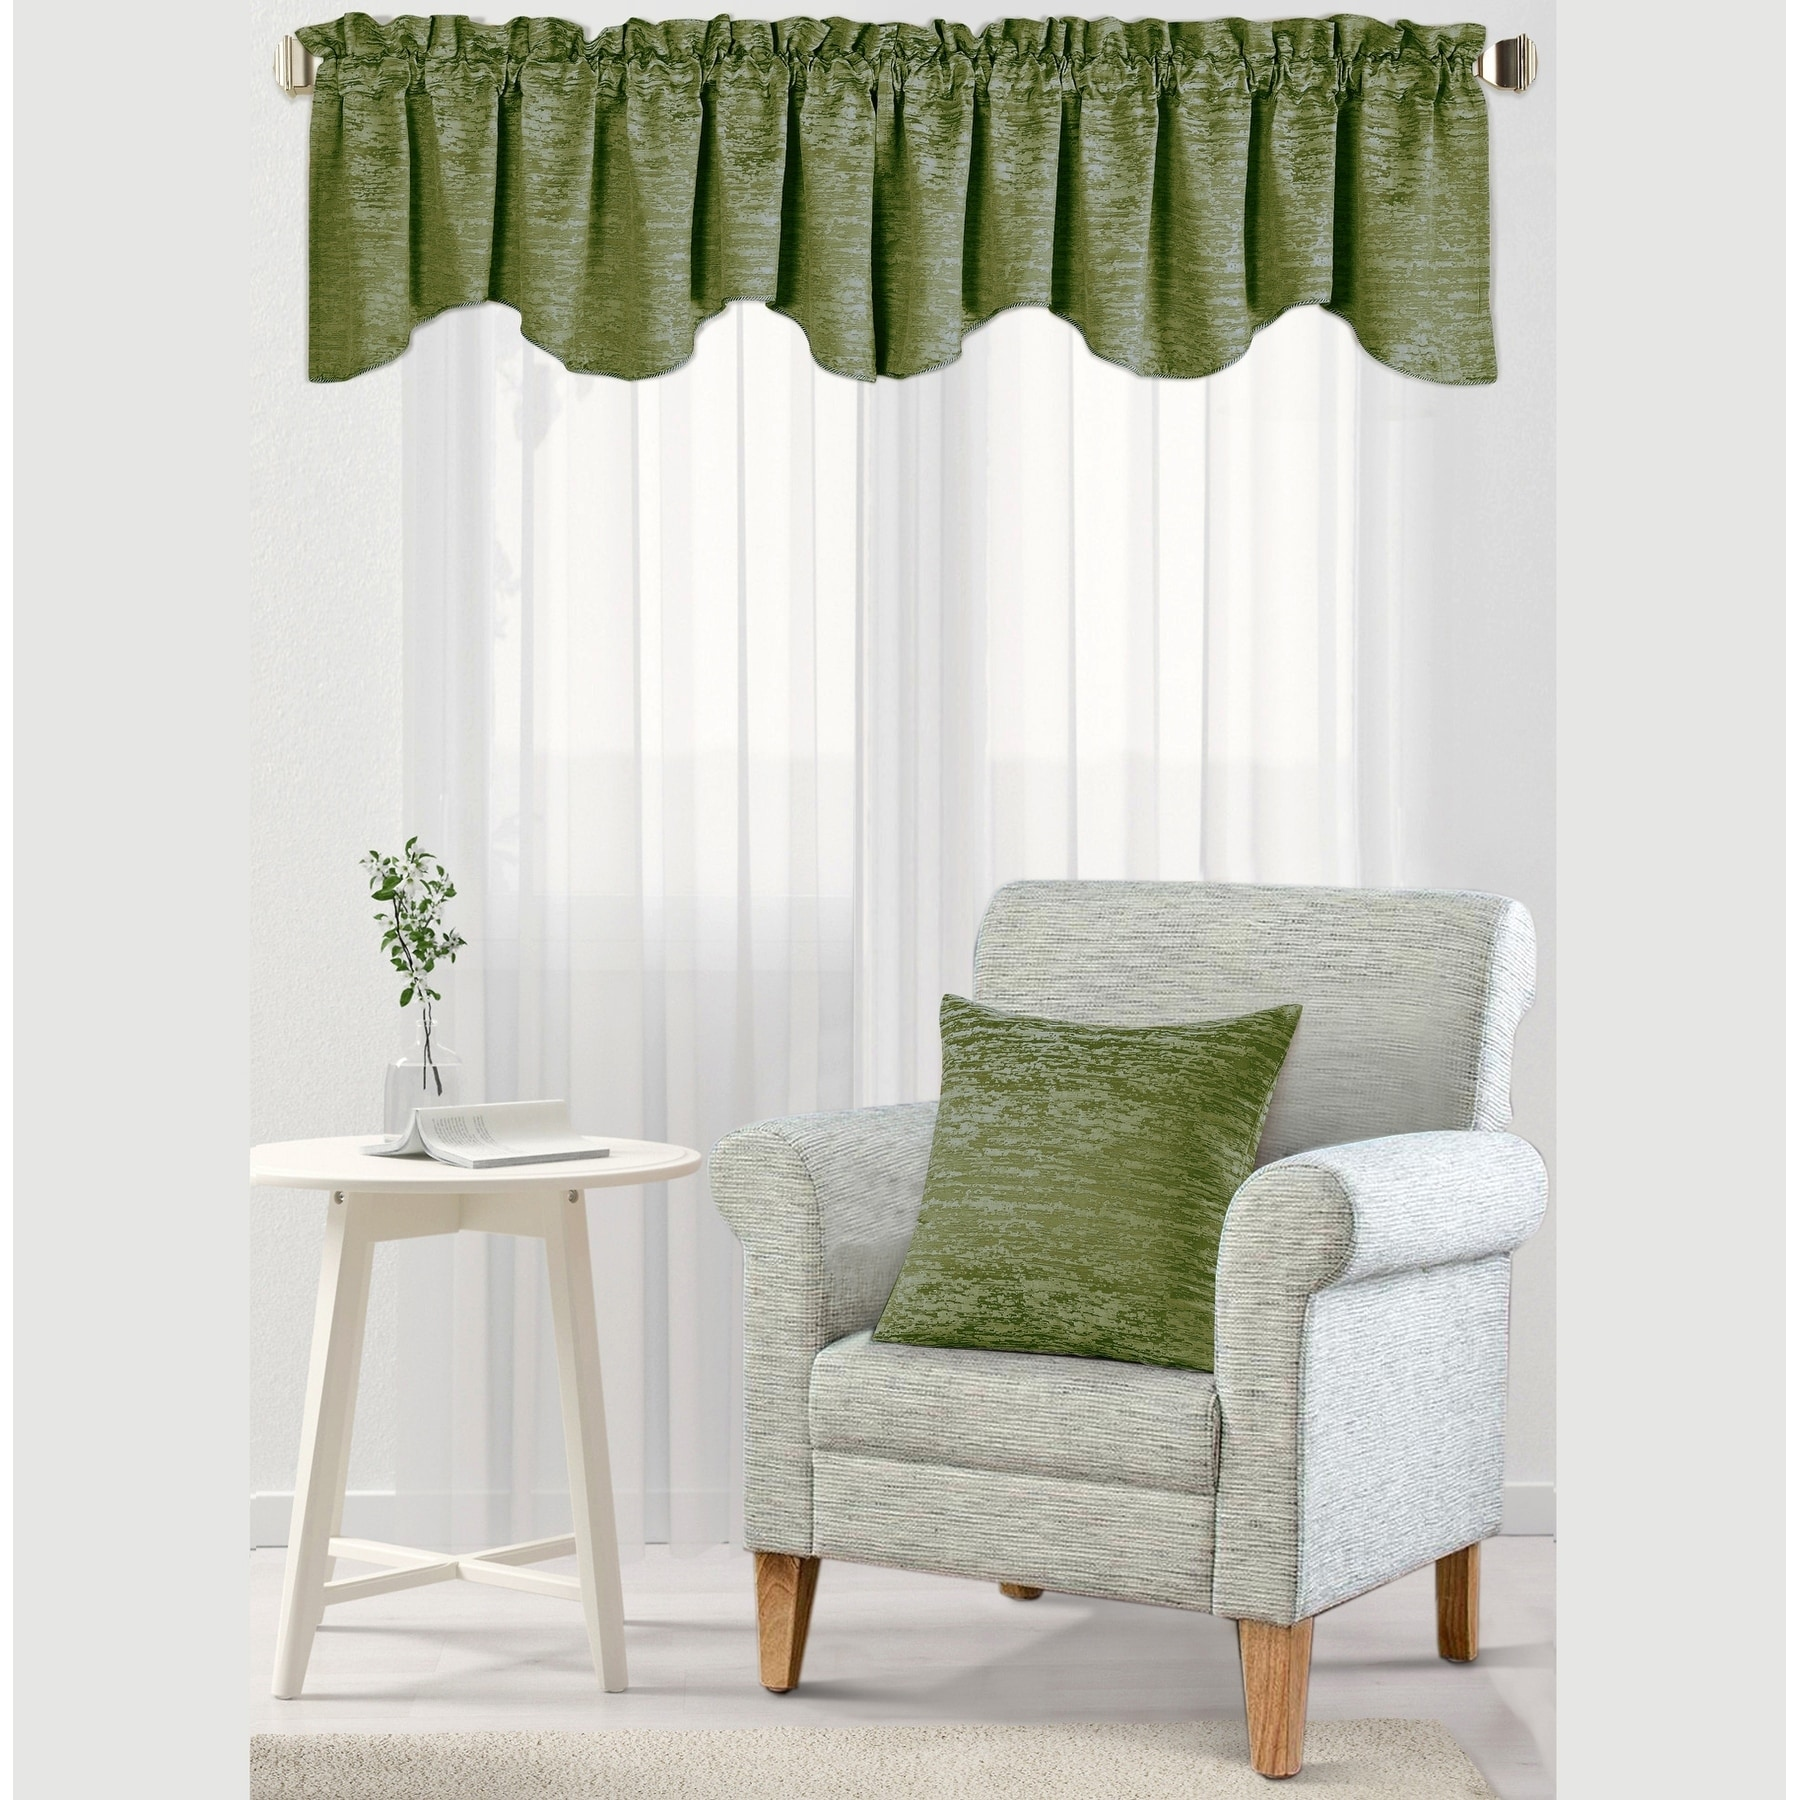 BNF Home Inc Serenta Jacquard Chenille Galaxy Window Valance & Pillow Shell Set